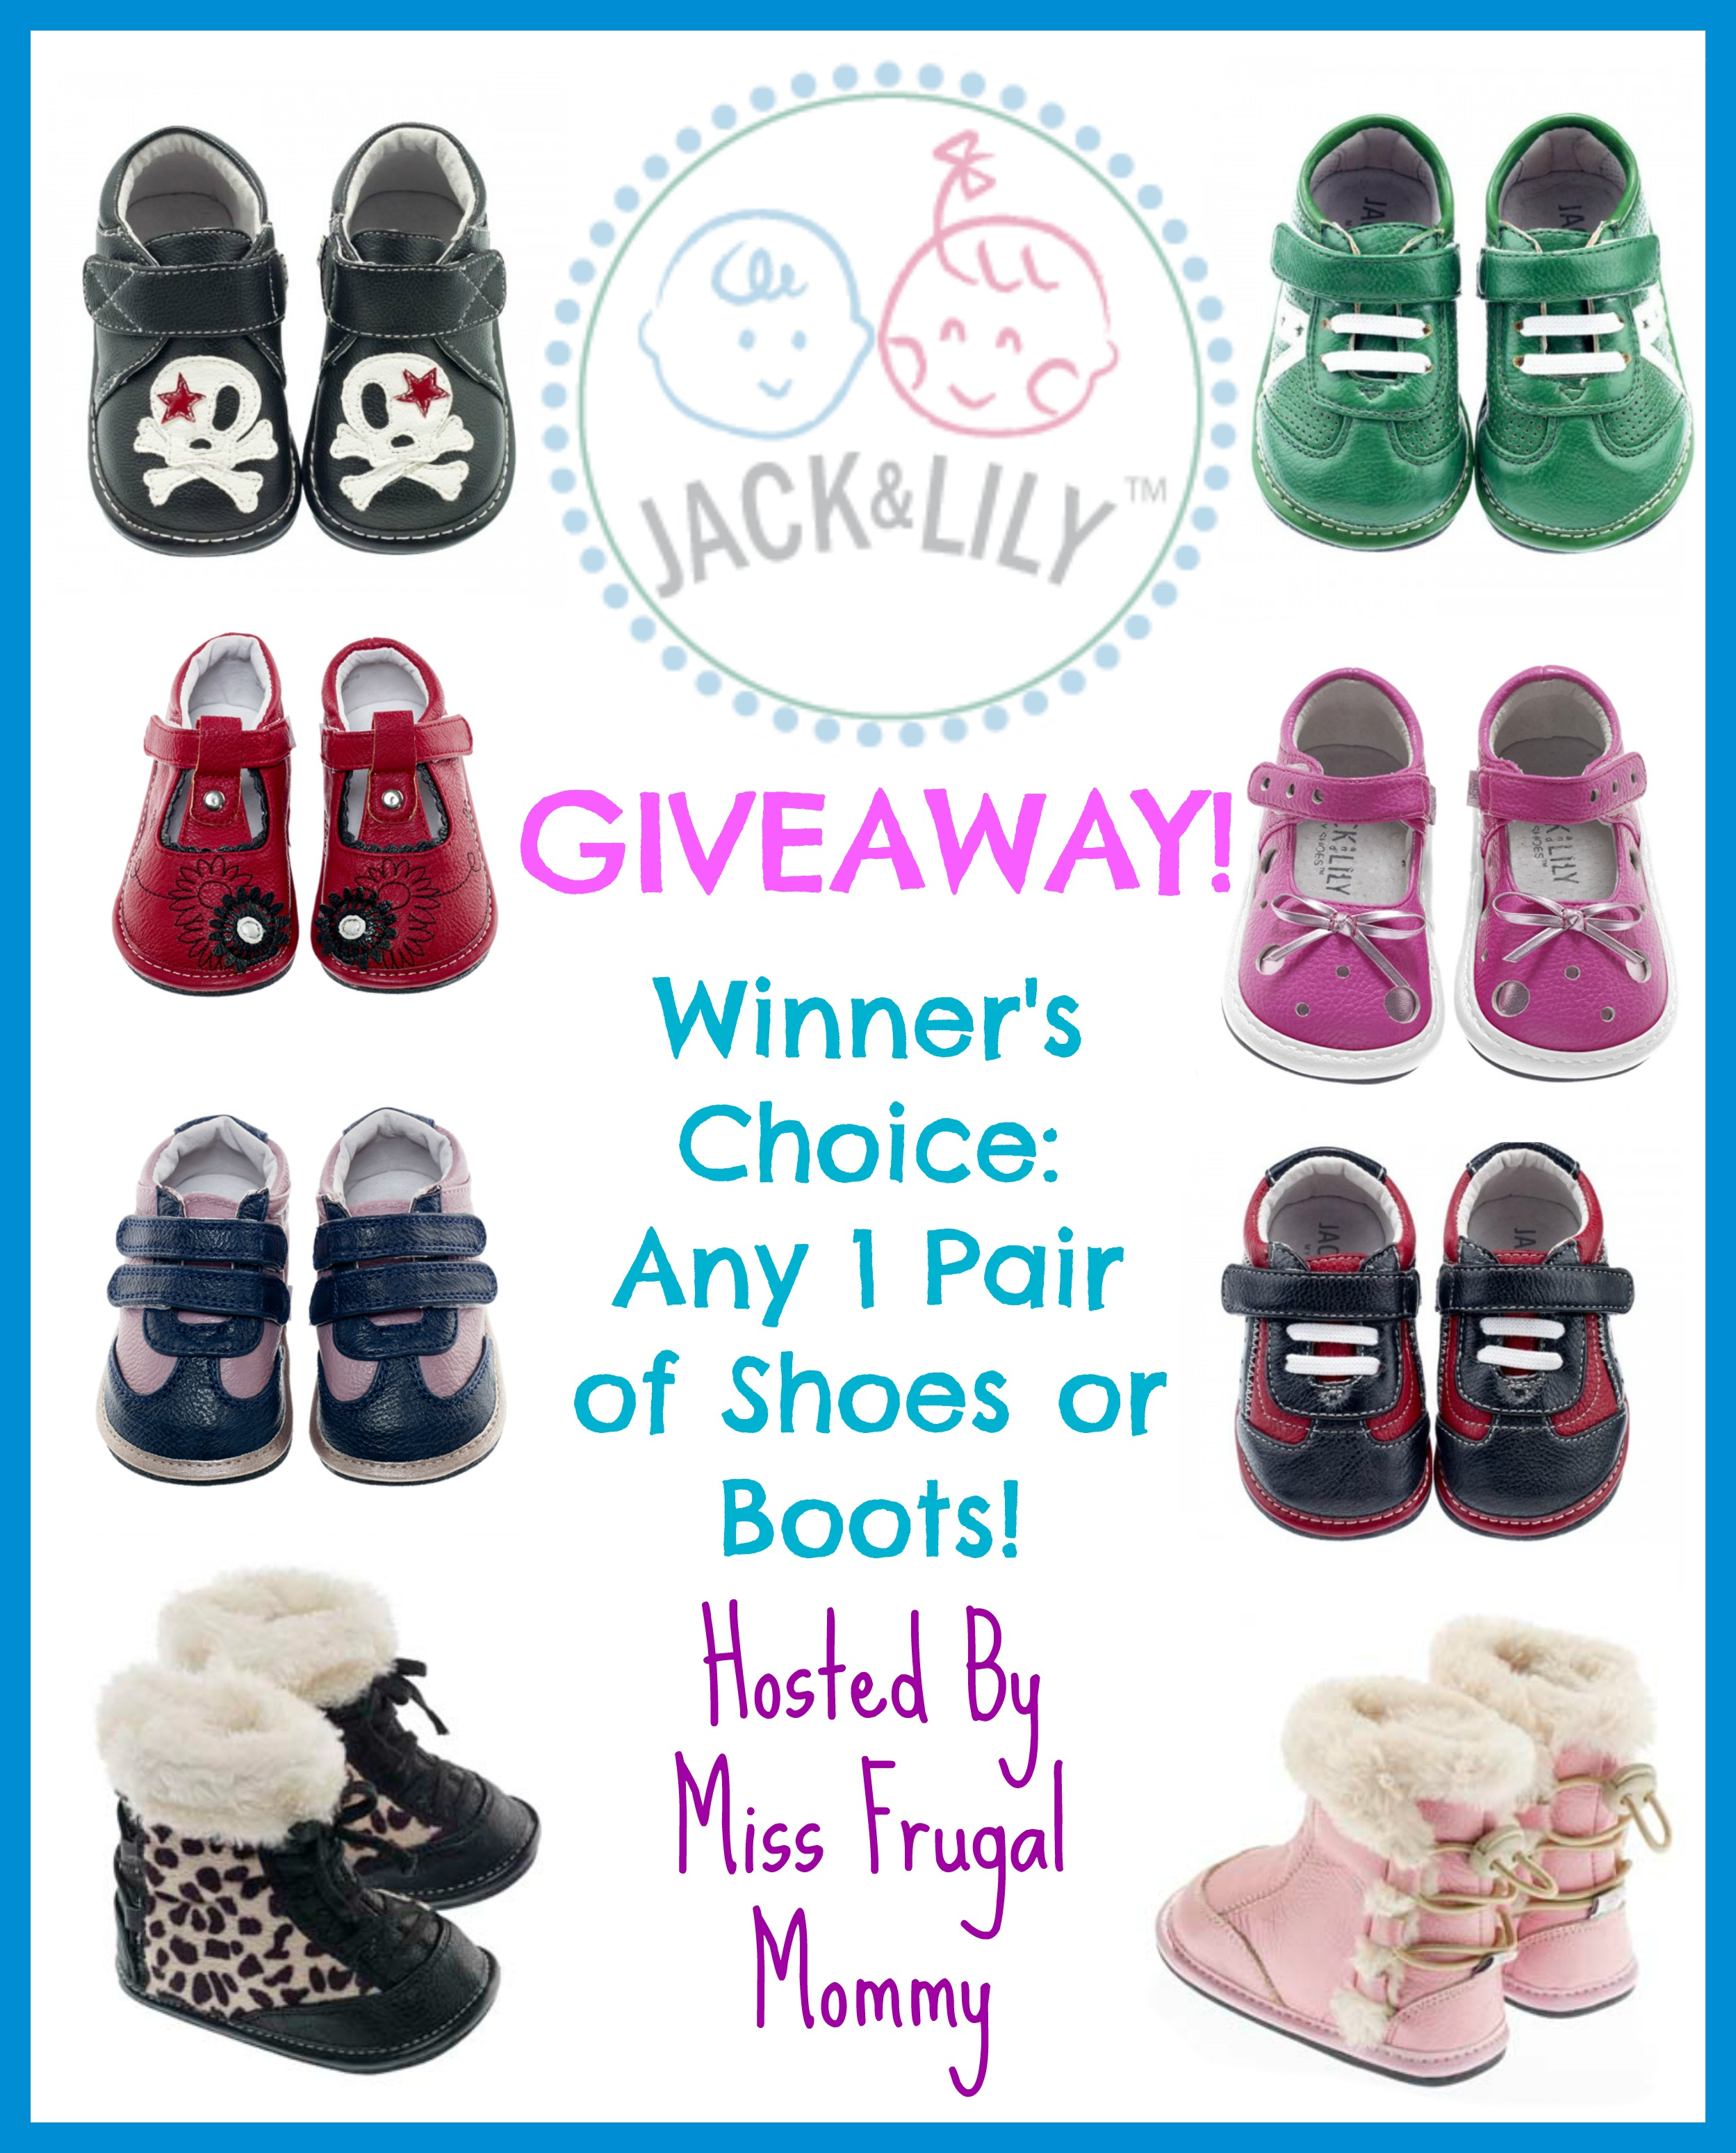 Jack & Lily Shoes Winner's Choice Giveaway ends 4/29